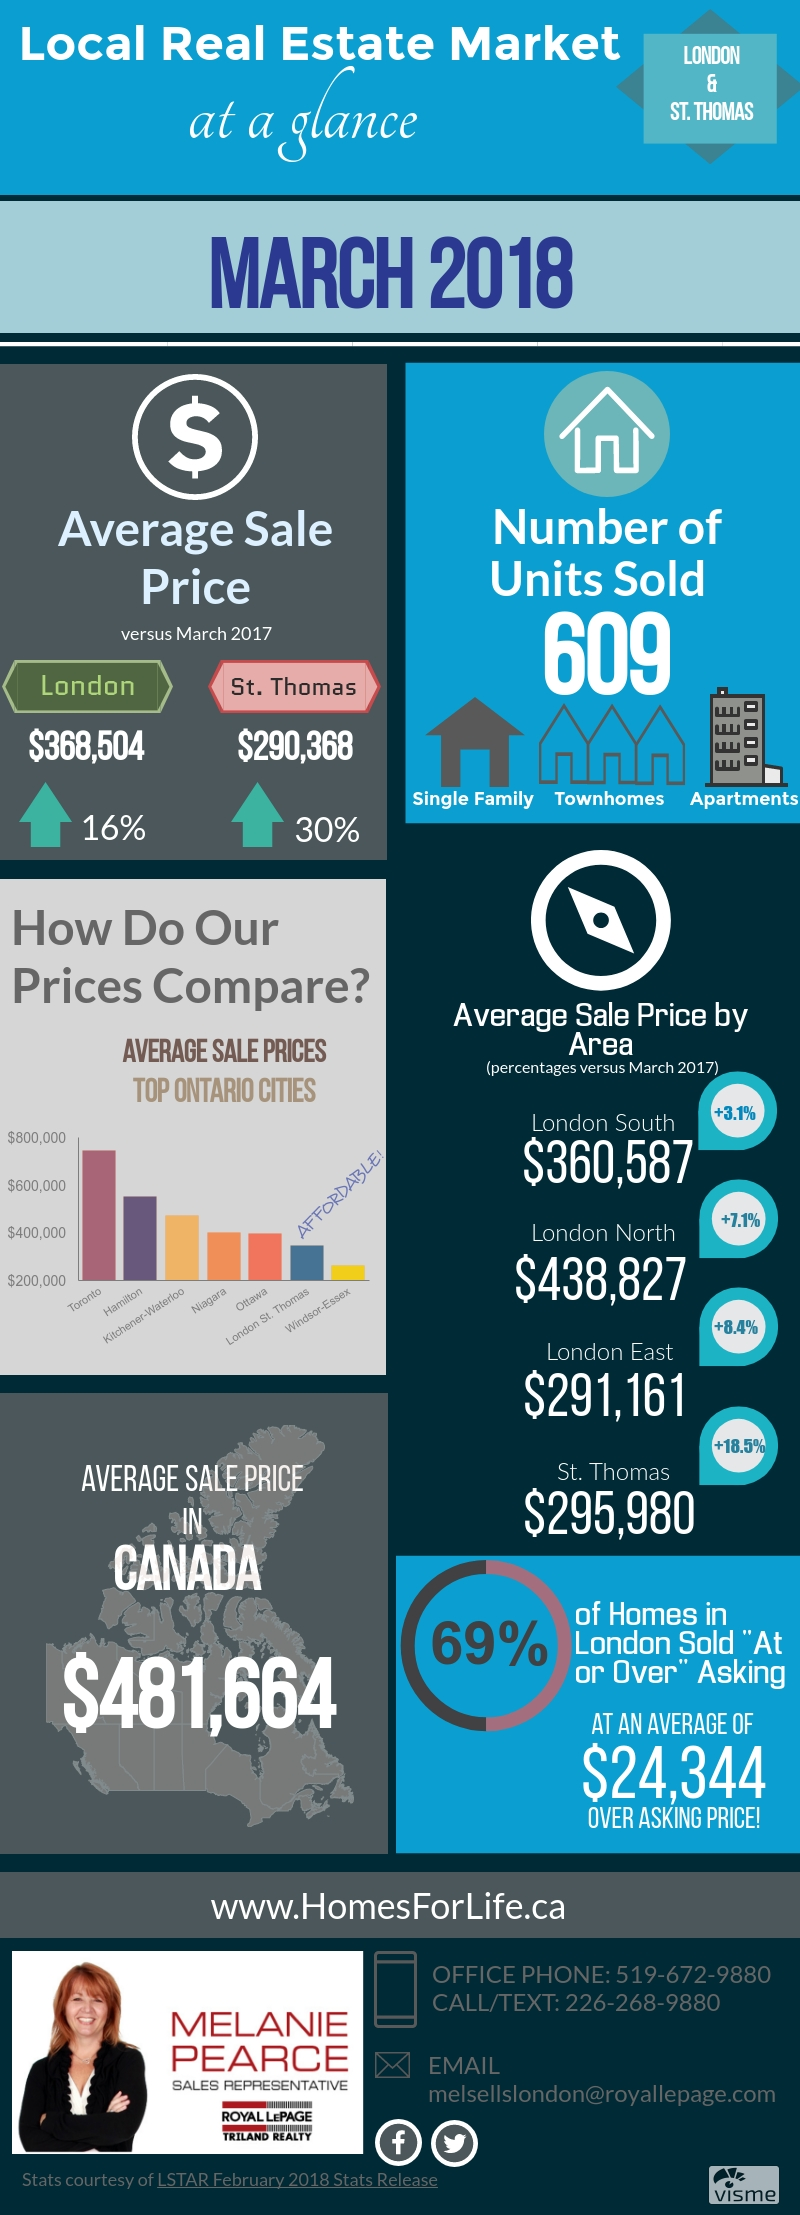 London-Ontario-Real-Estate-Market-Stats-March 2018.jpg